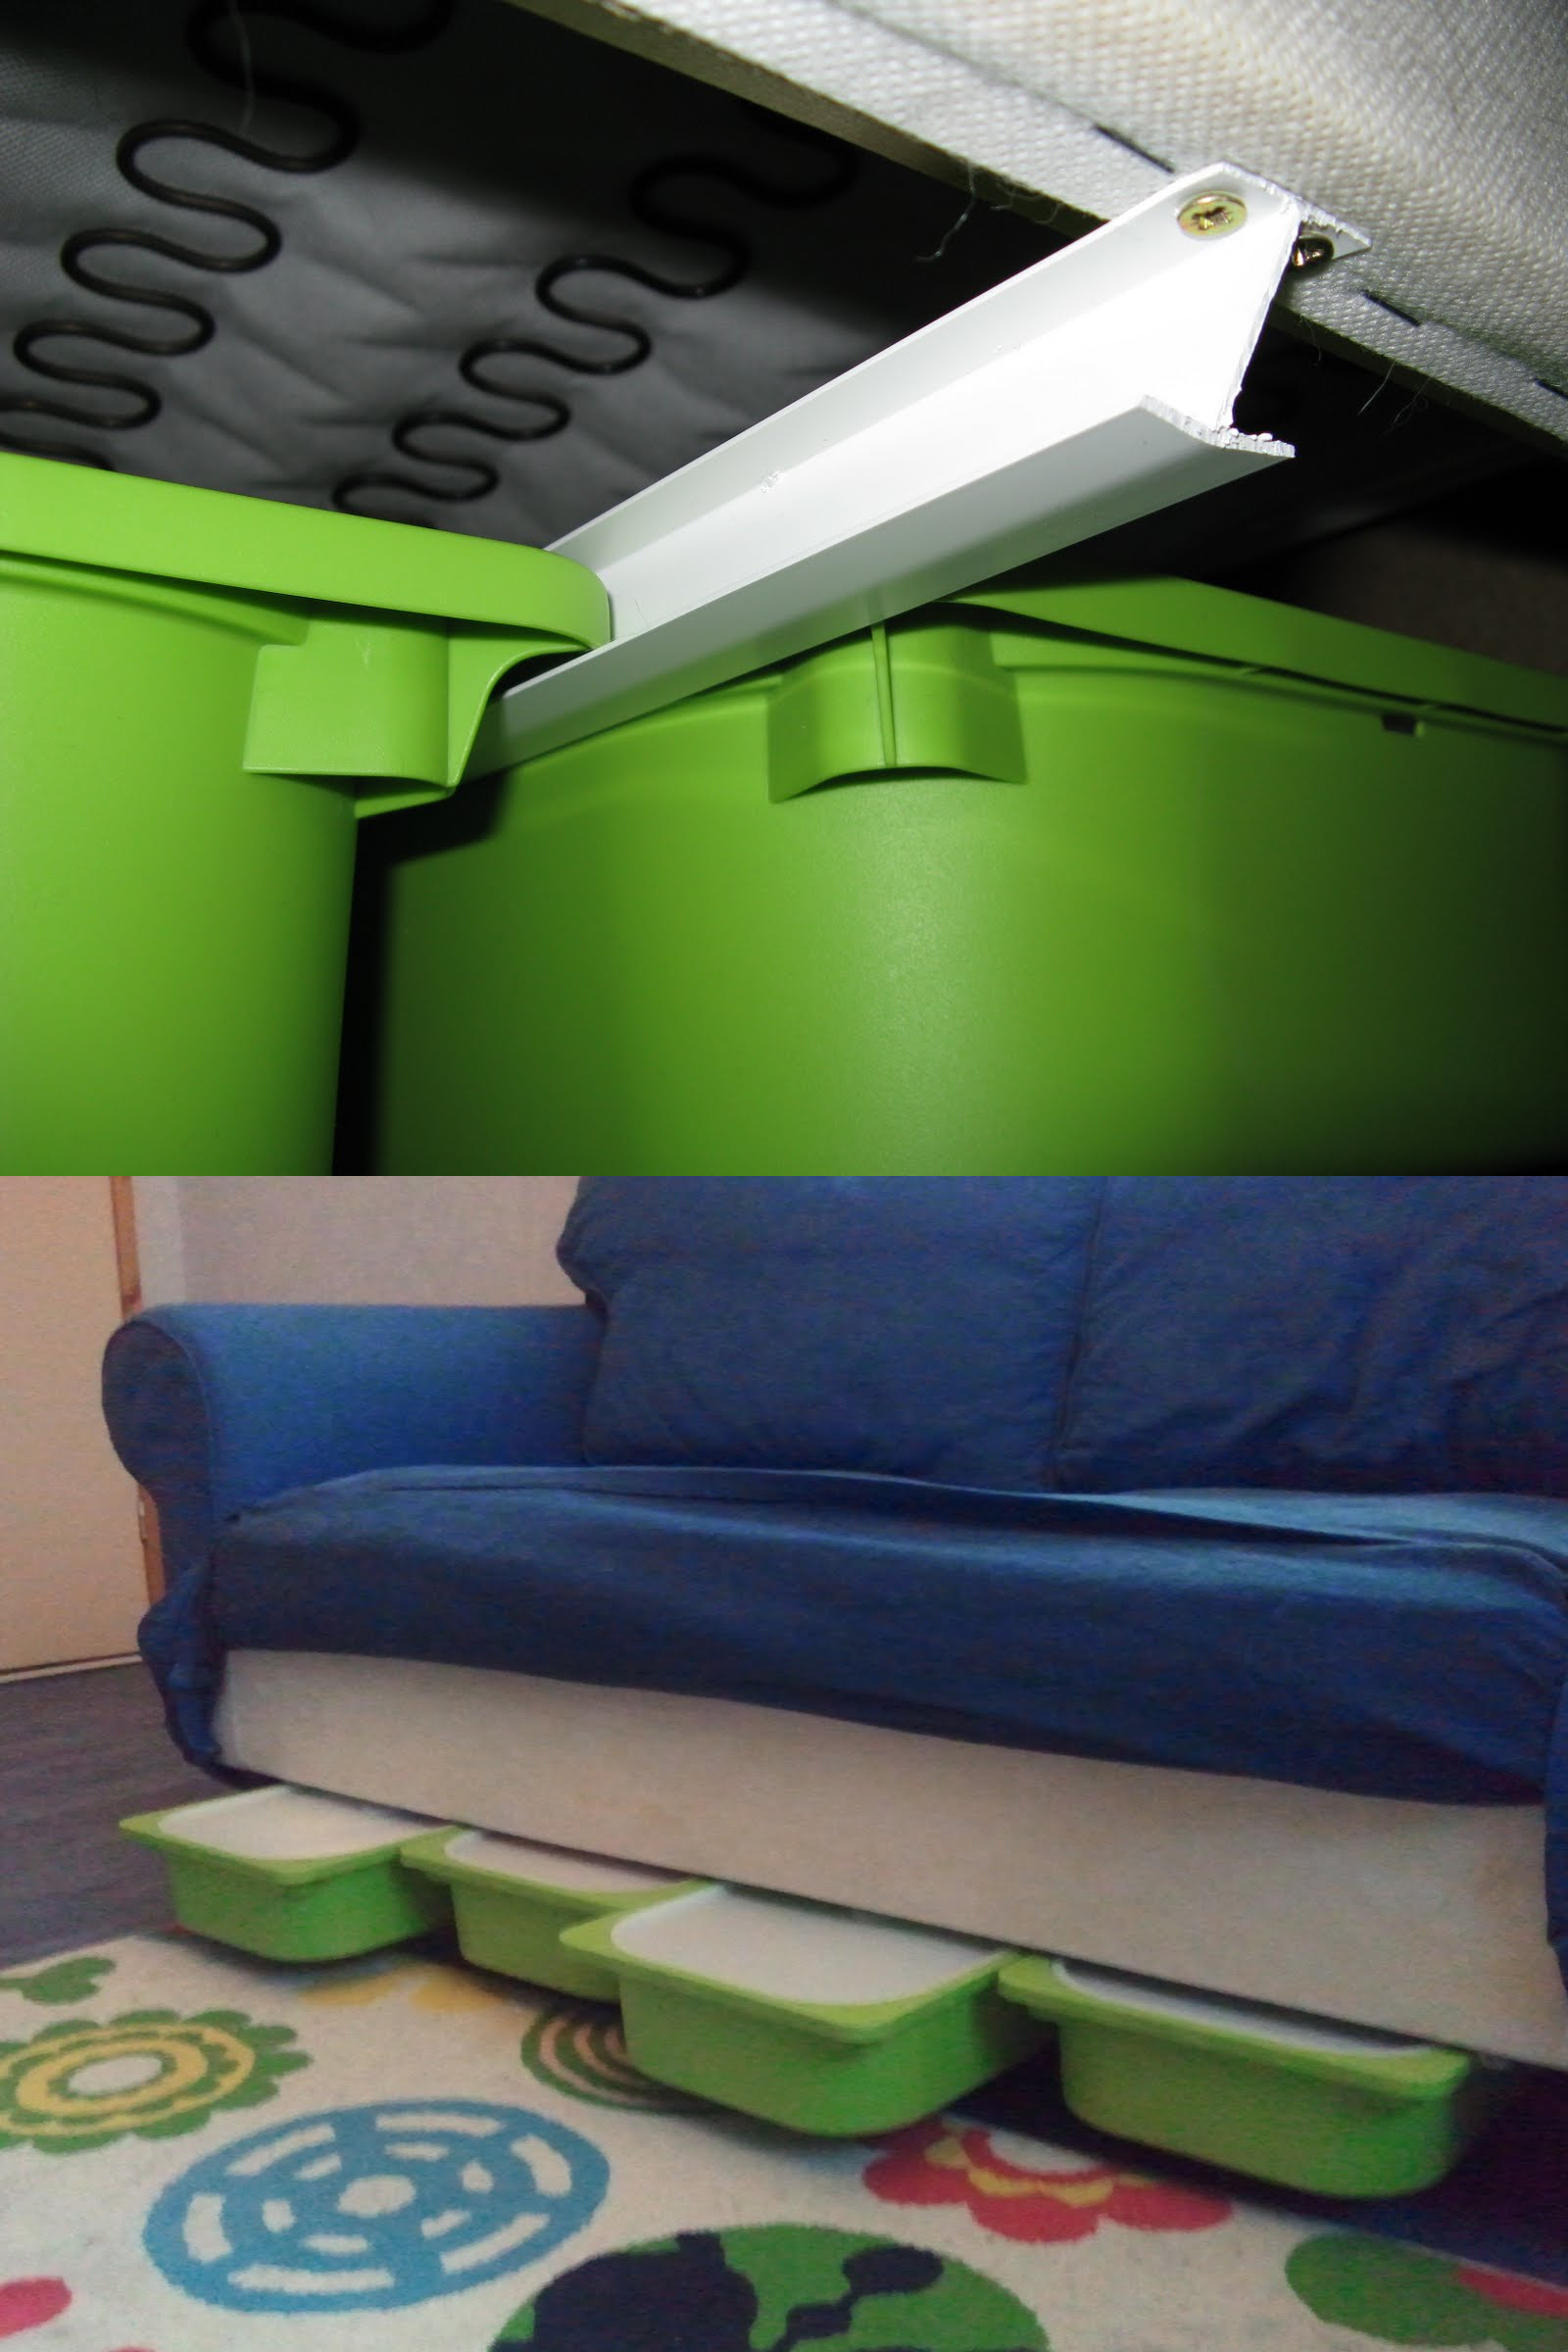 19 Create slide out under sofa toy storage using Trofast containers on H rails via simphome